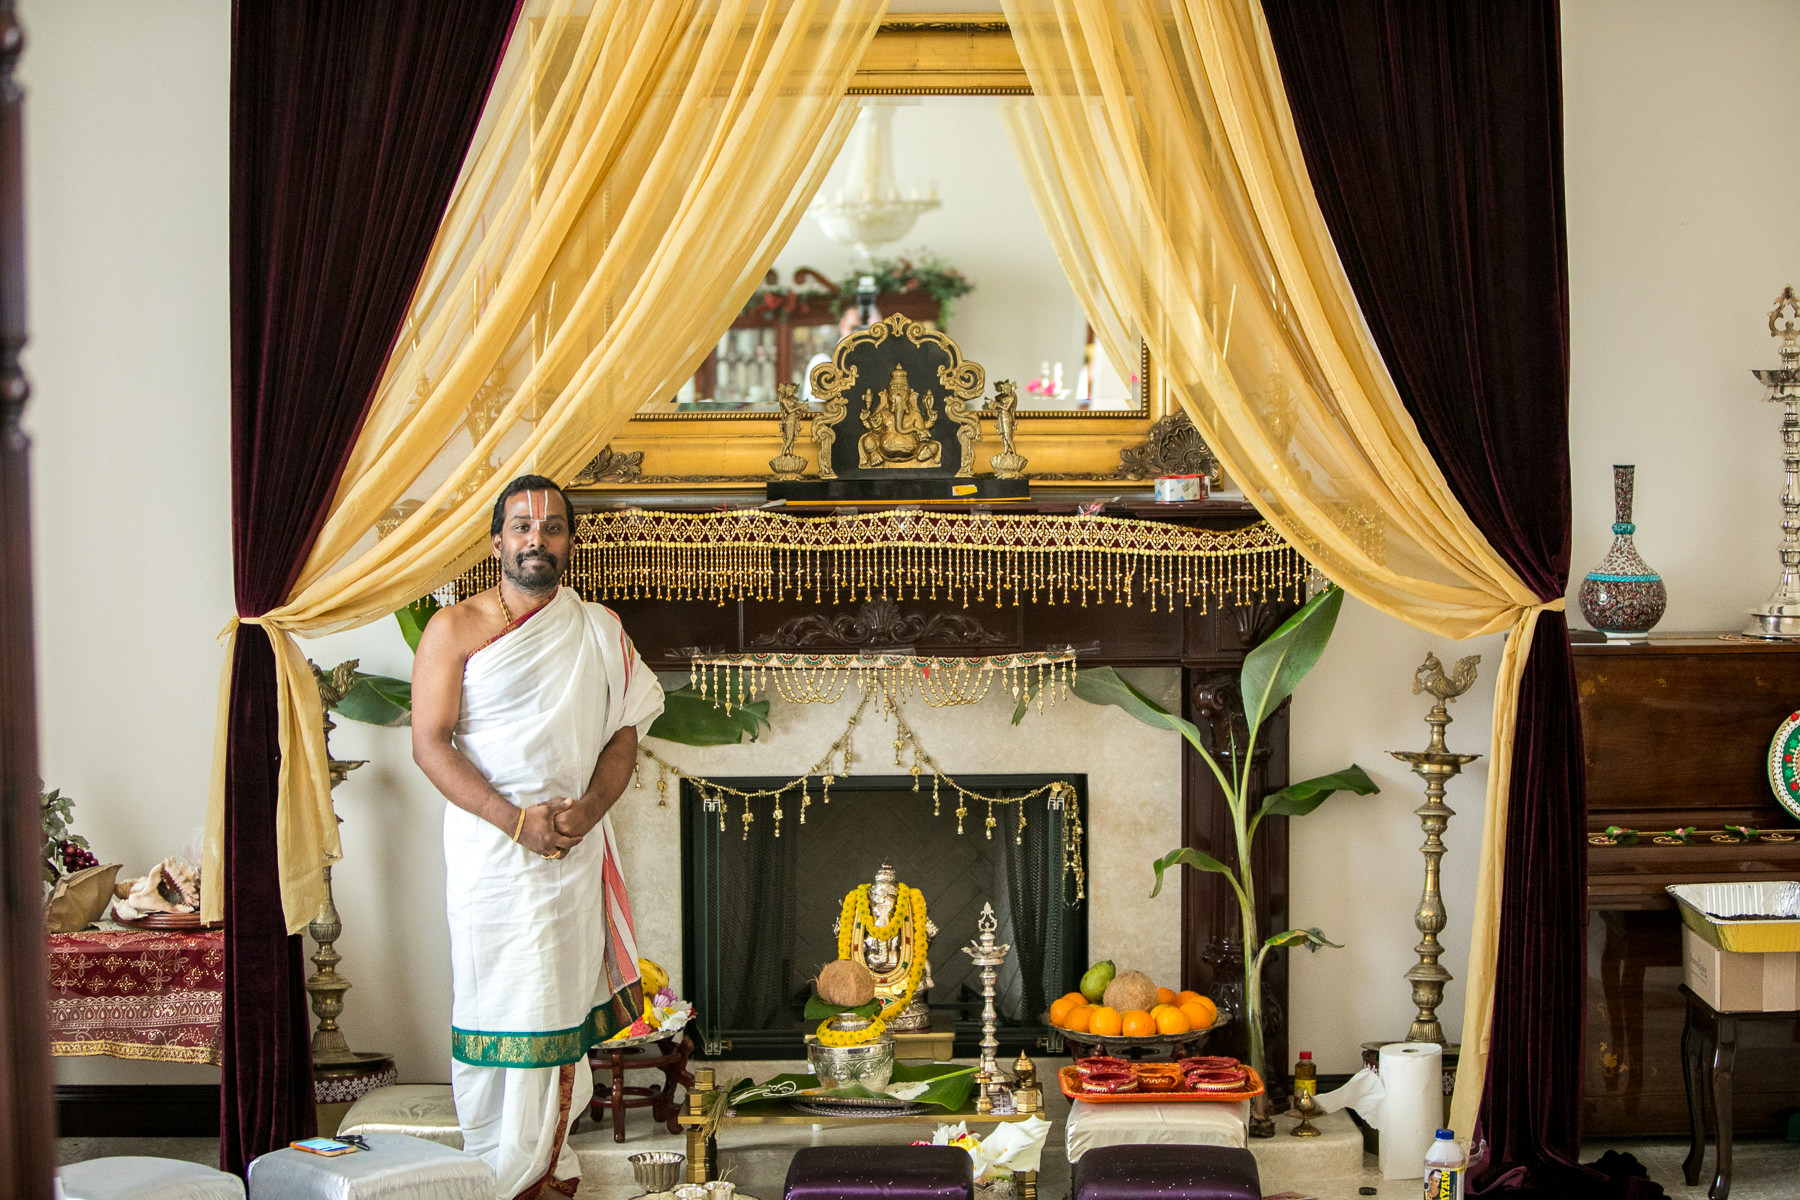 sadhu in front of alter for hindu wedding photographer